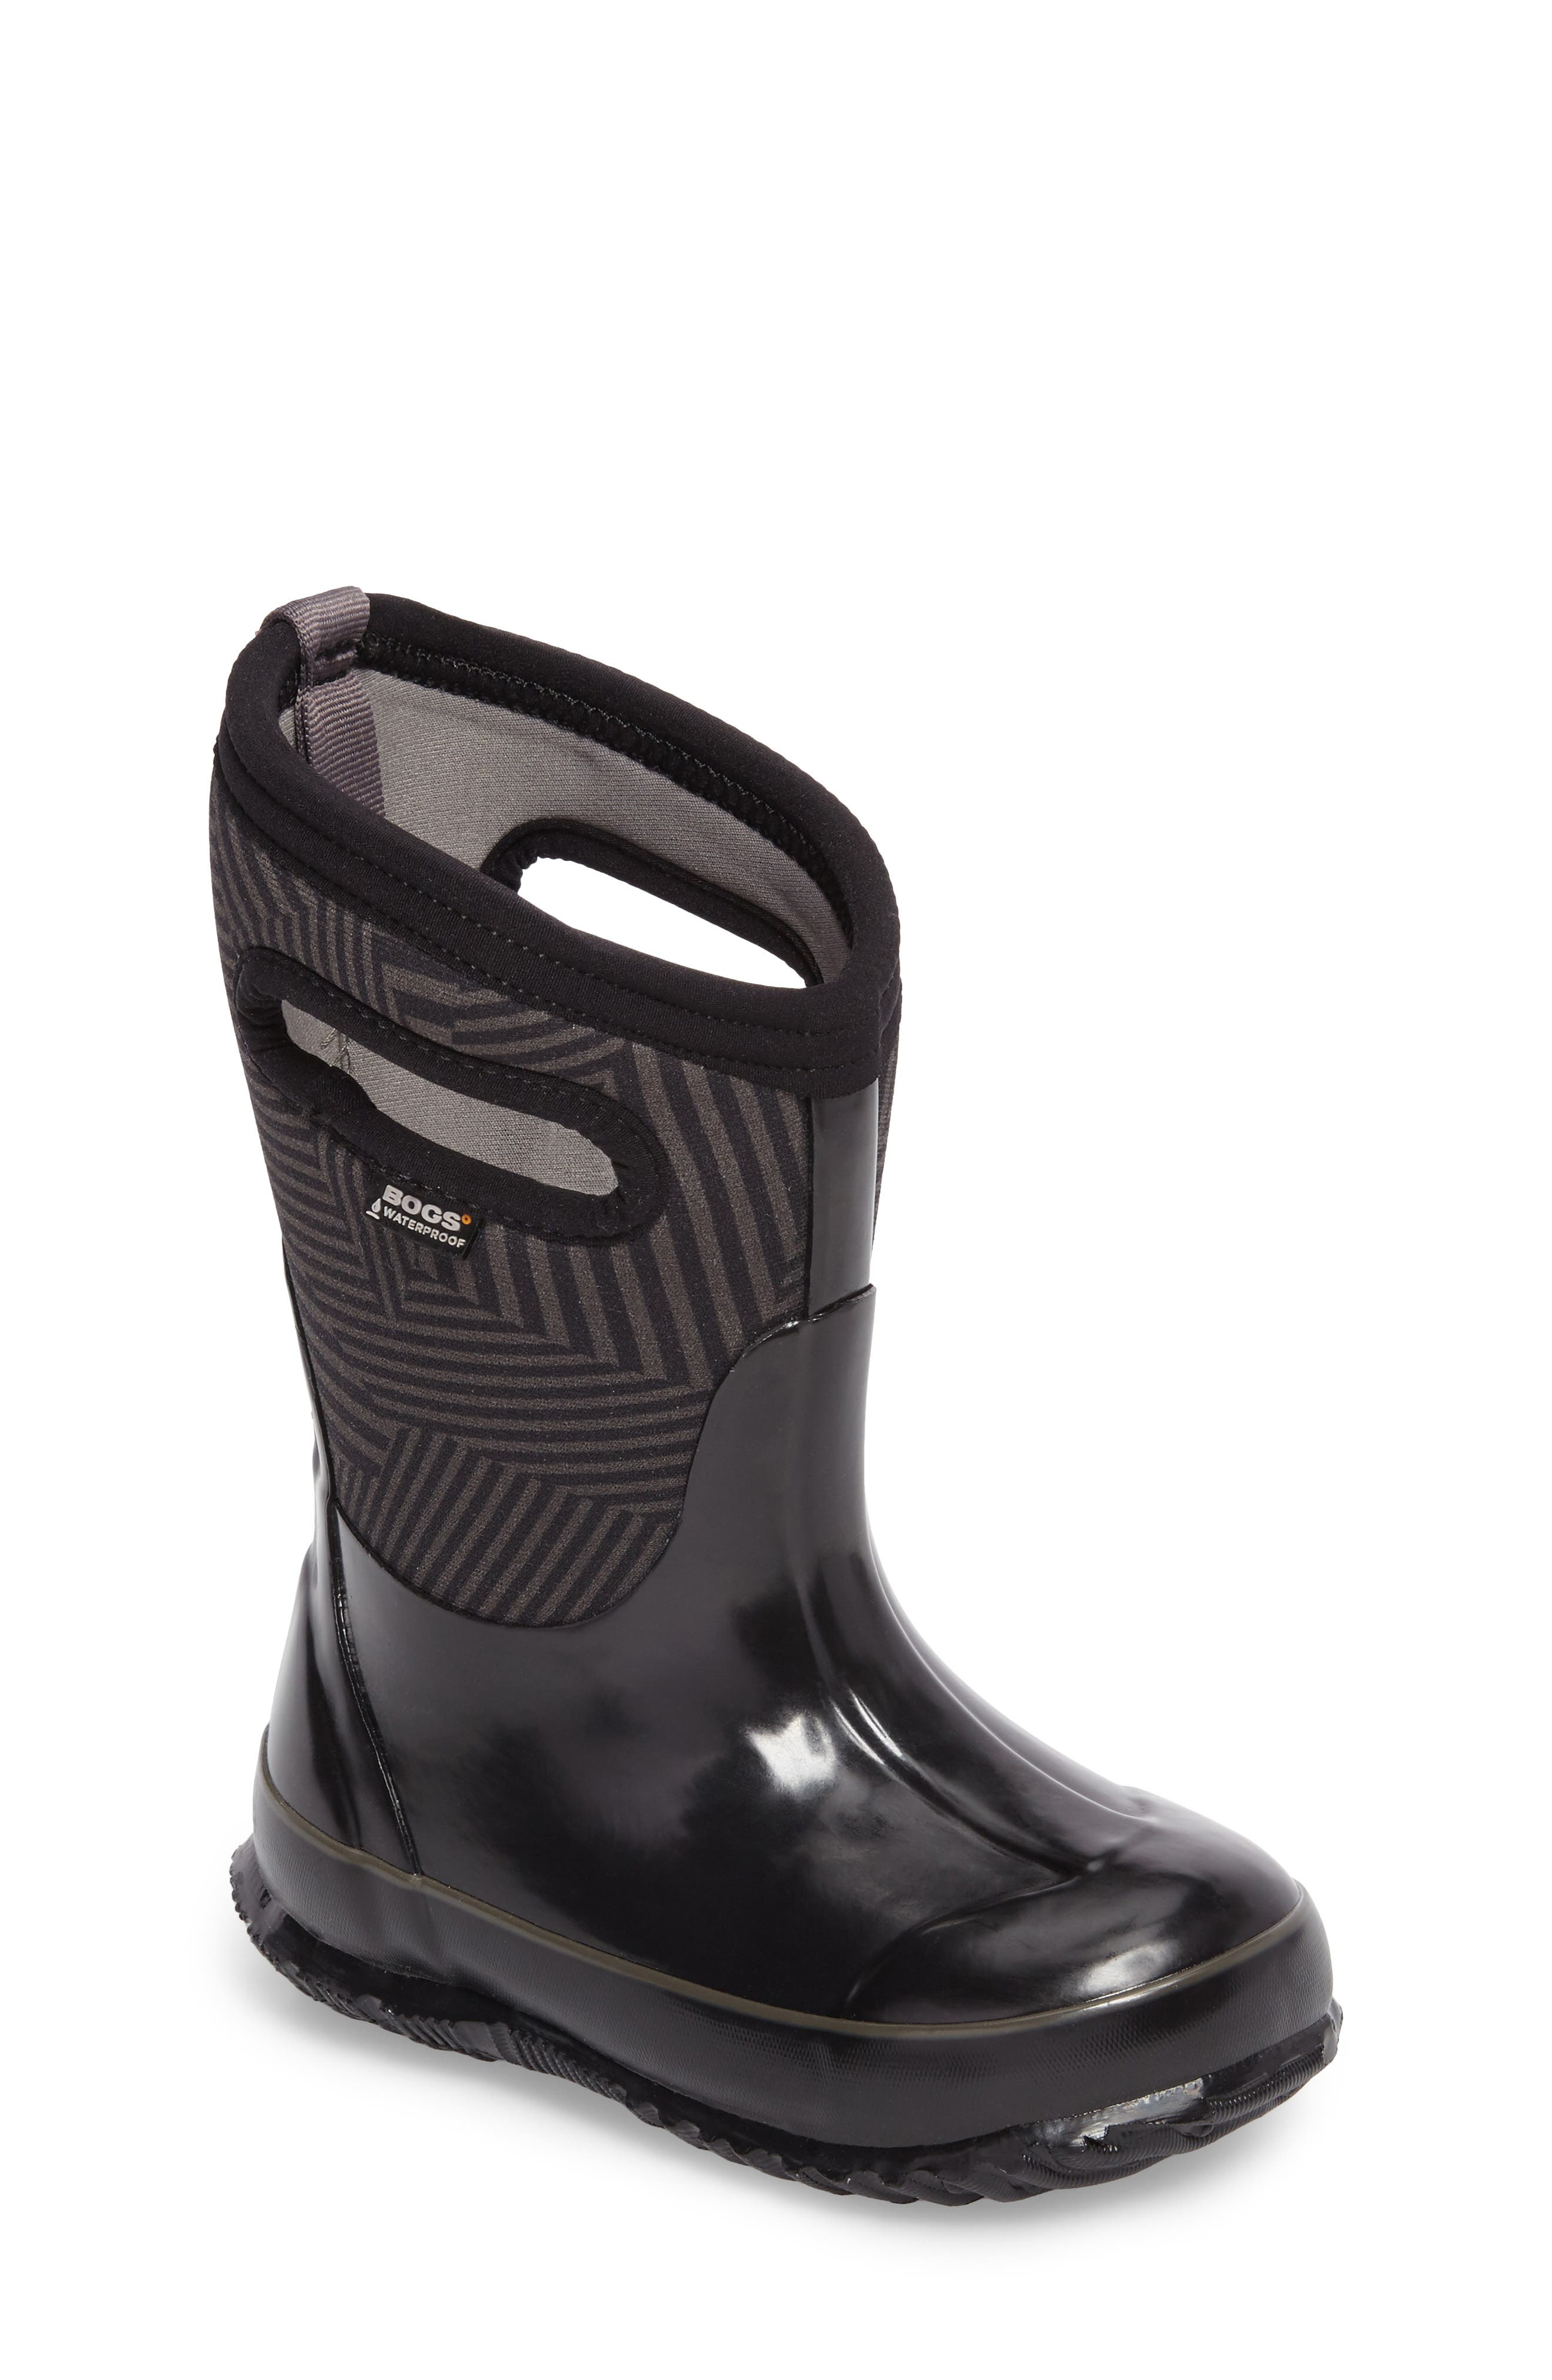 Alternate Image 1 Selected - Bogs Classic Phaser Insulated Waterproof Boot (Toddler, Little Kid & Big Kid)